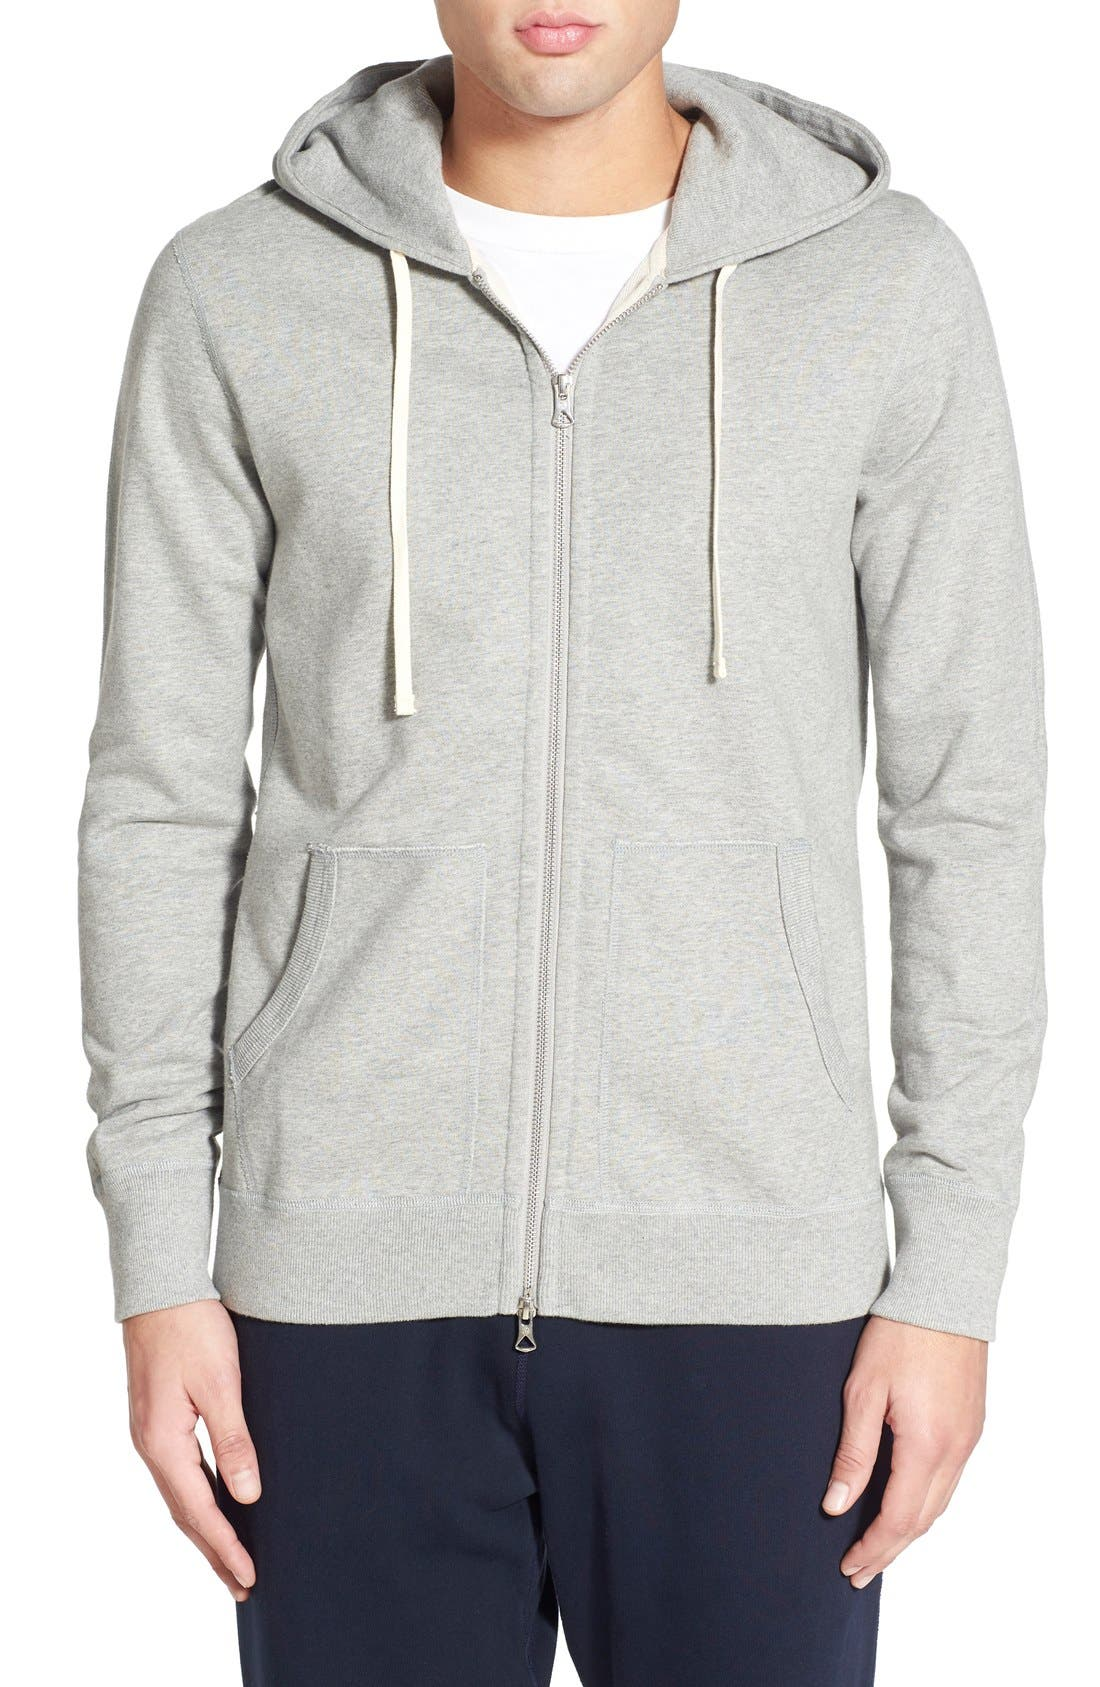 Reigning Champ Trim Fit Full Zip Hoodie Sale New Styles Clearance Geniue Stockist Exclusive Buy Cheap Pay With Paypal Stockist Online SYZIVSK